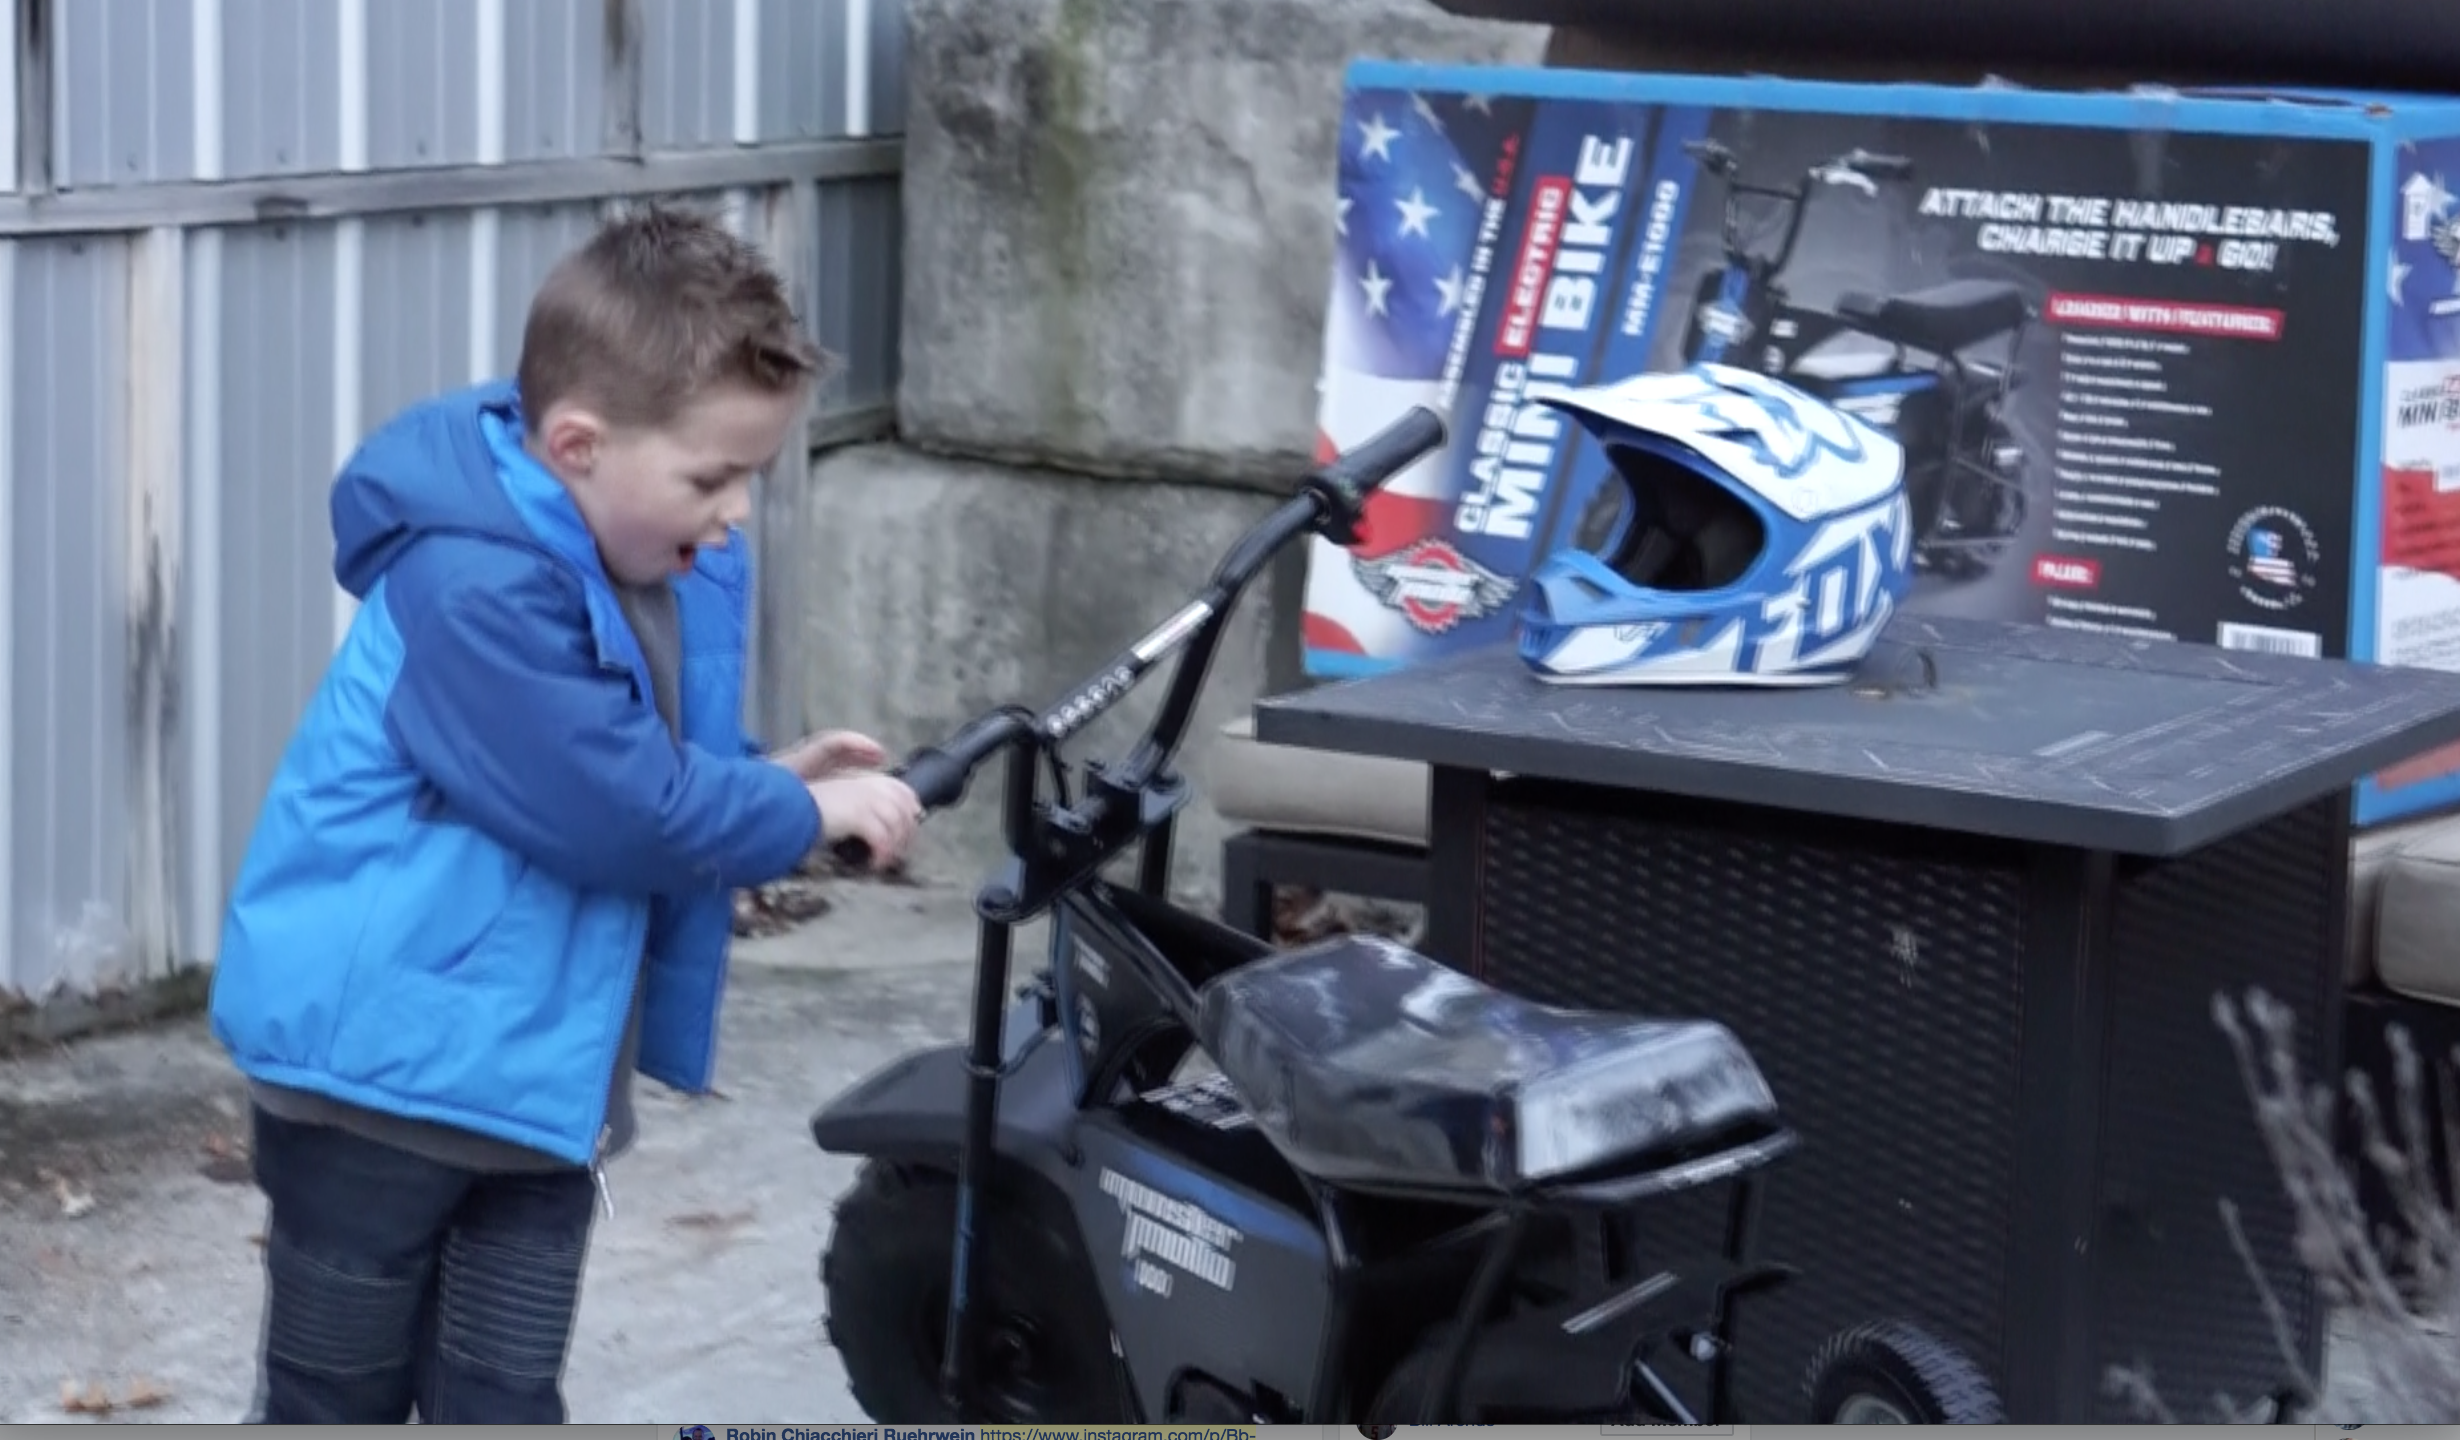 Mini Bike by Monster Moto - E1000 Electric Mini Bike unboxing surprise gift for boy's birthday via Misty Nelson frostedblog blogger & influencer @frostedevents kids toy reviews